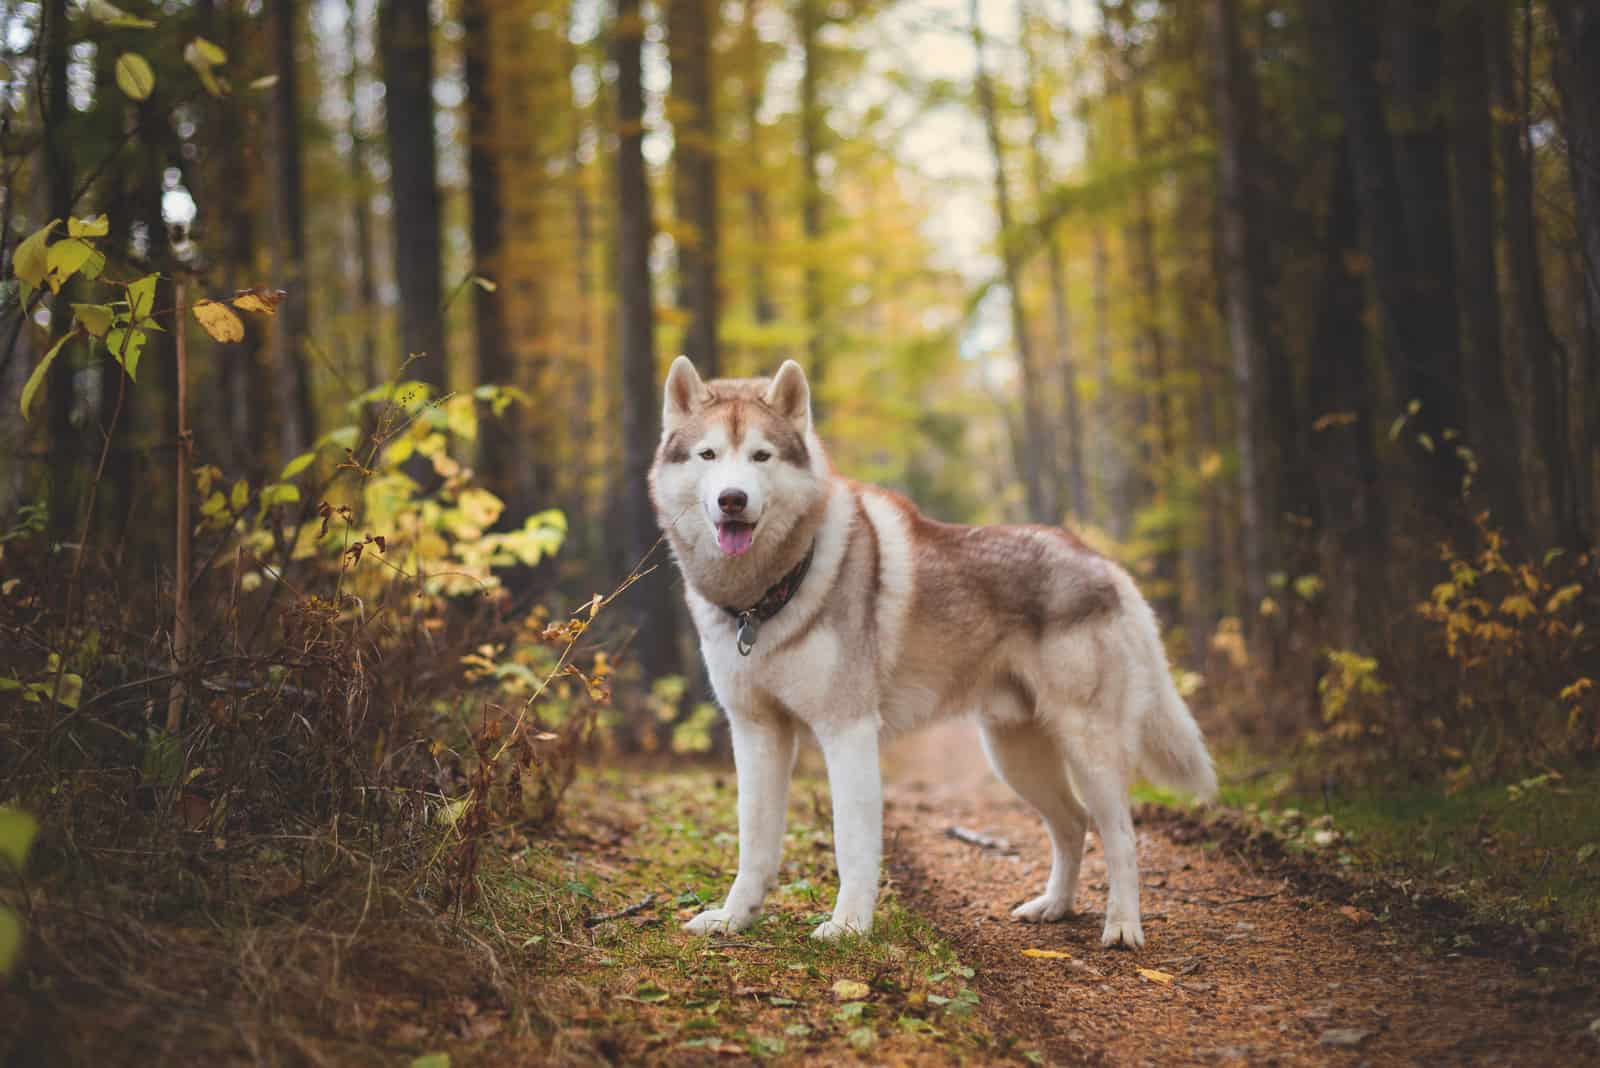 Siberian Husky dog standing in the bright enchanting fall forest